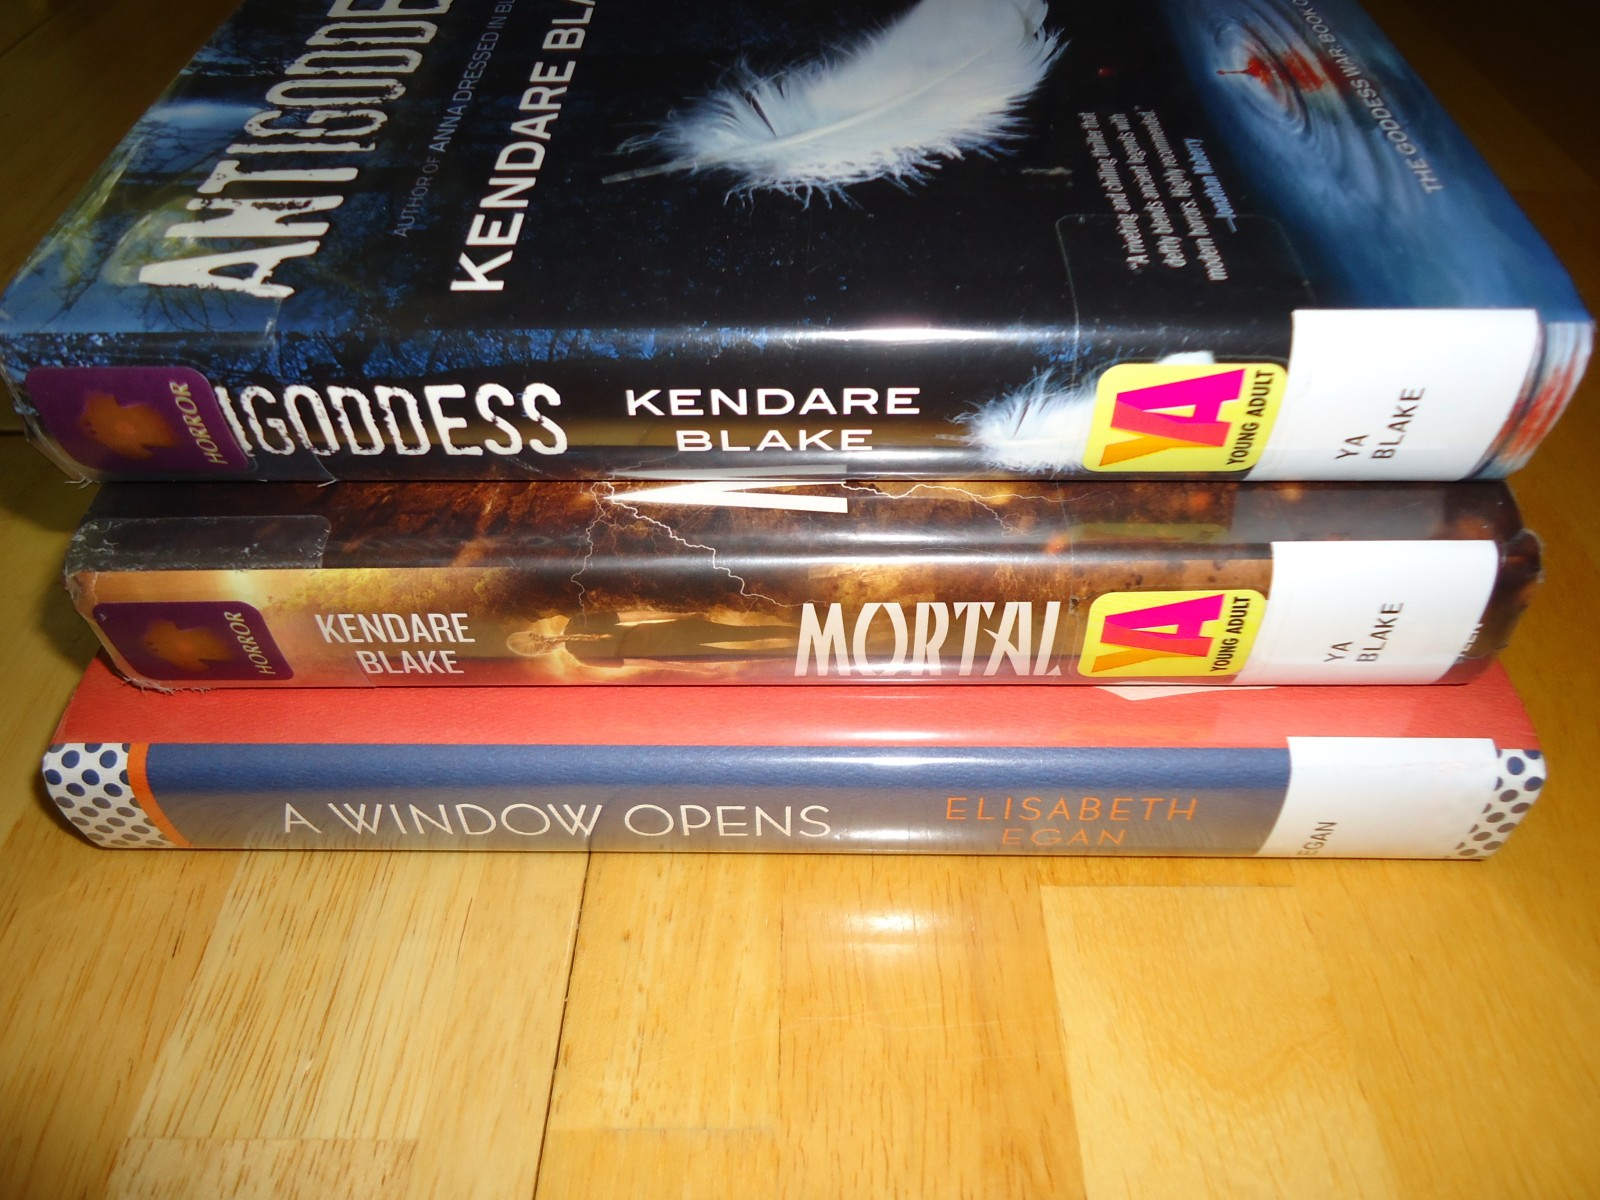 Library Haul and Reading List 9/4/15